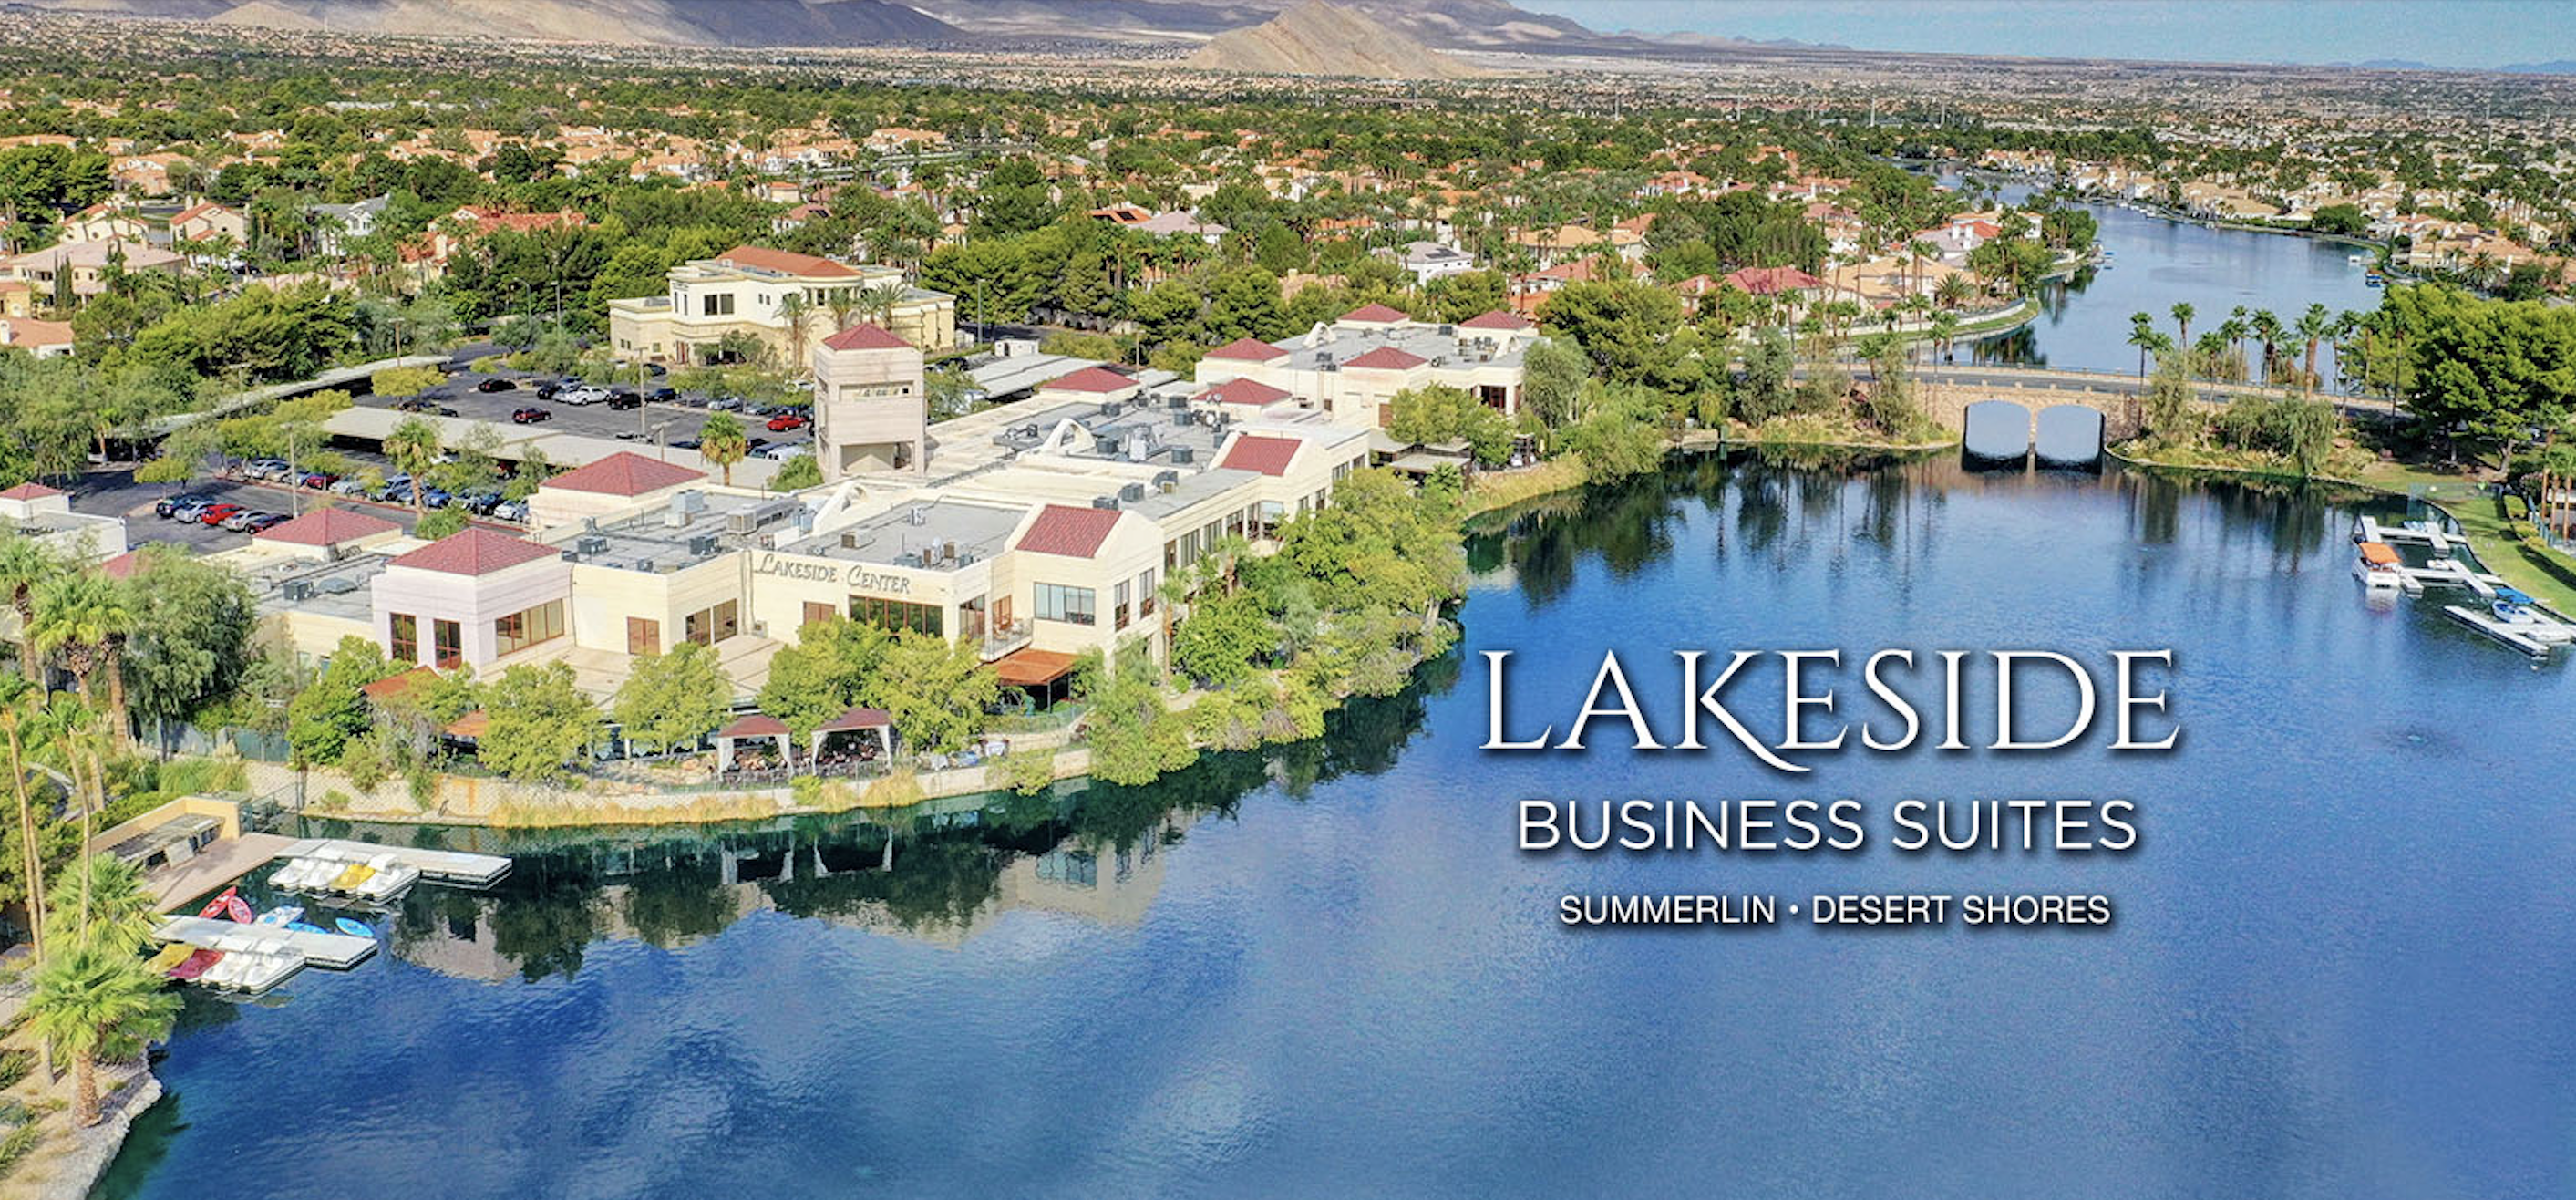 Lakeside Business Suites logo in Aerial image